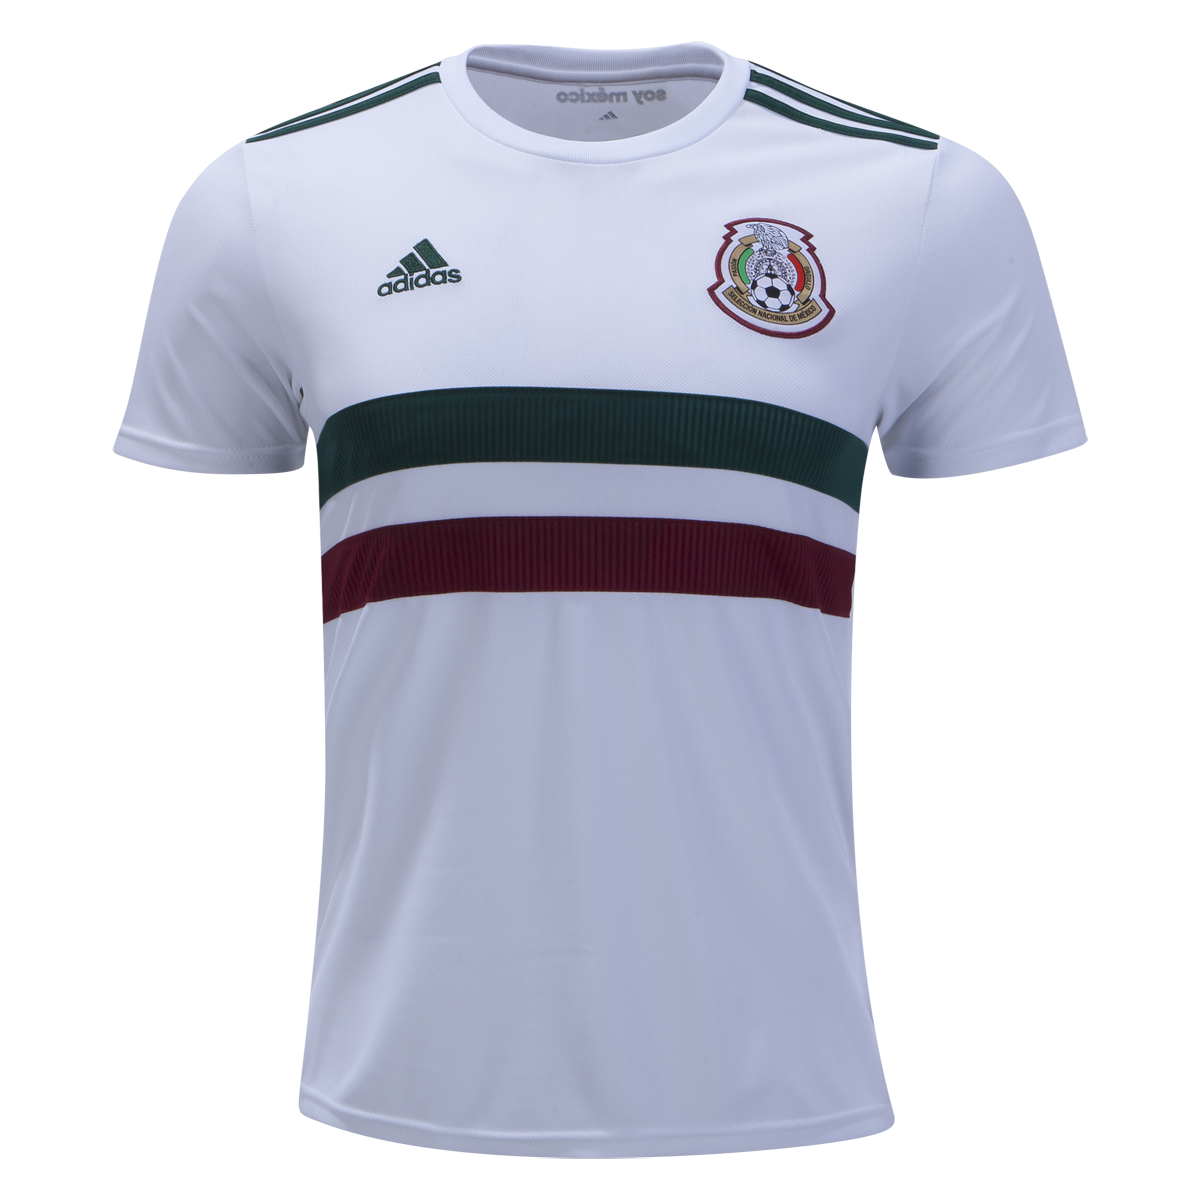 Adidas Mexico Away Jersey 2018 S In 2020 Mexico Away Jersey Soccer Jersey Jersey